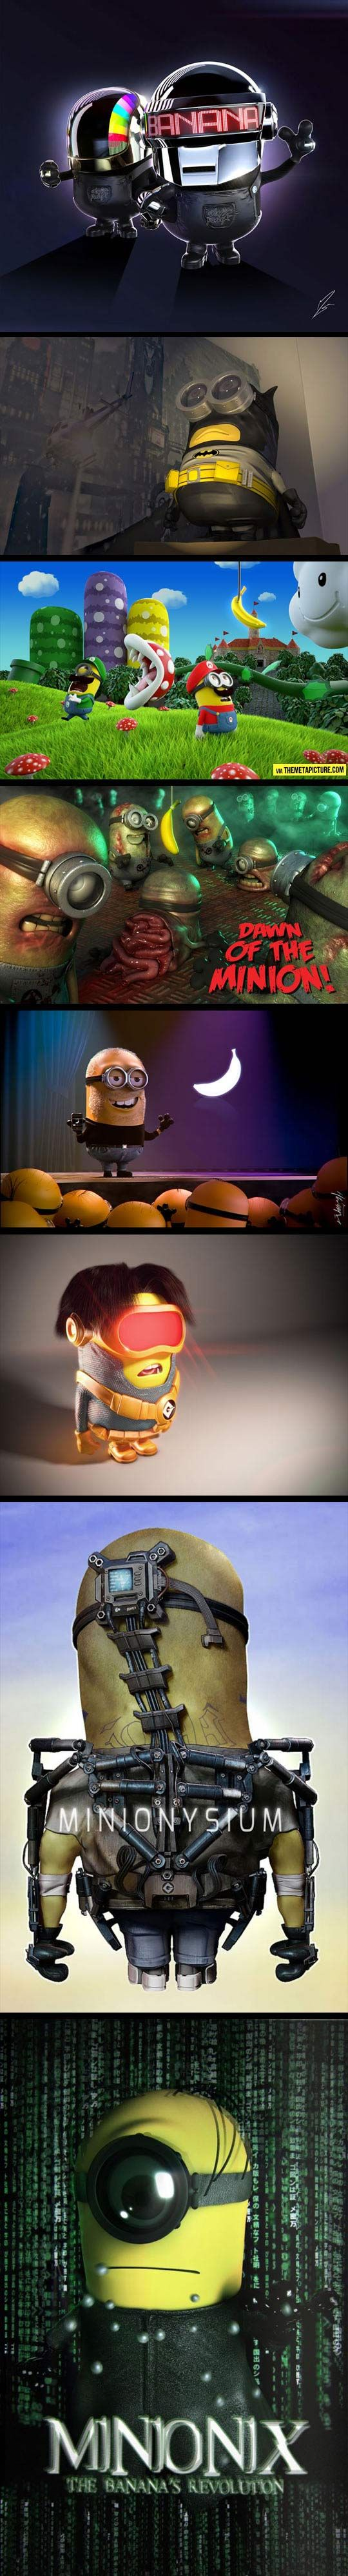 For Minion lovers... - The Meta Picture